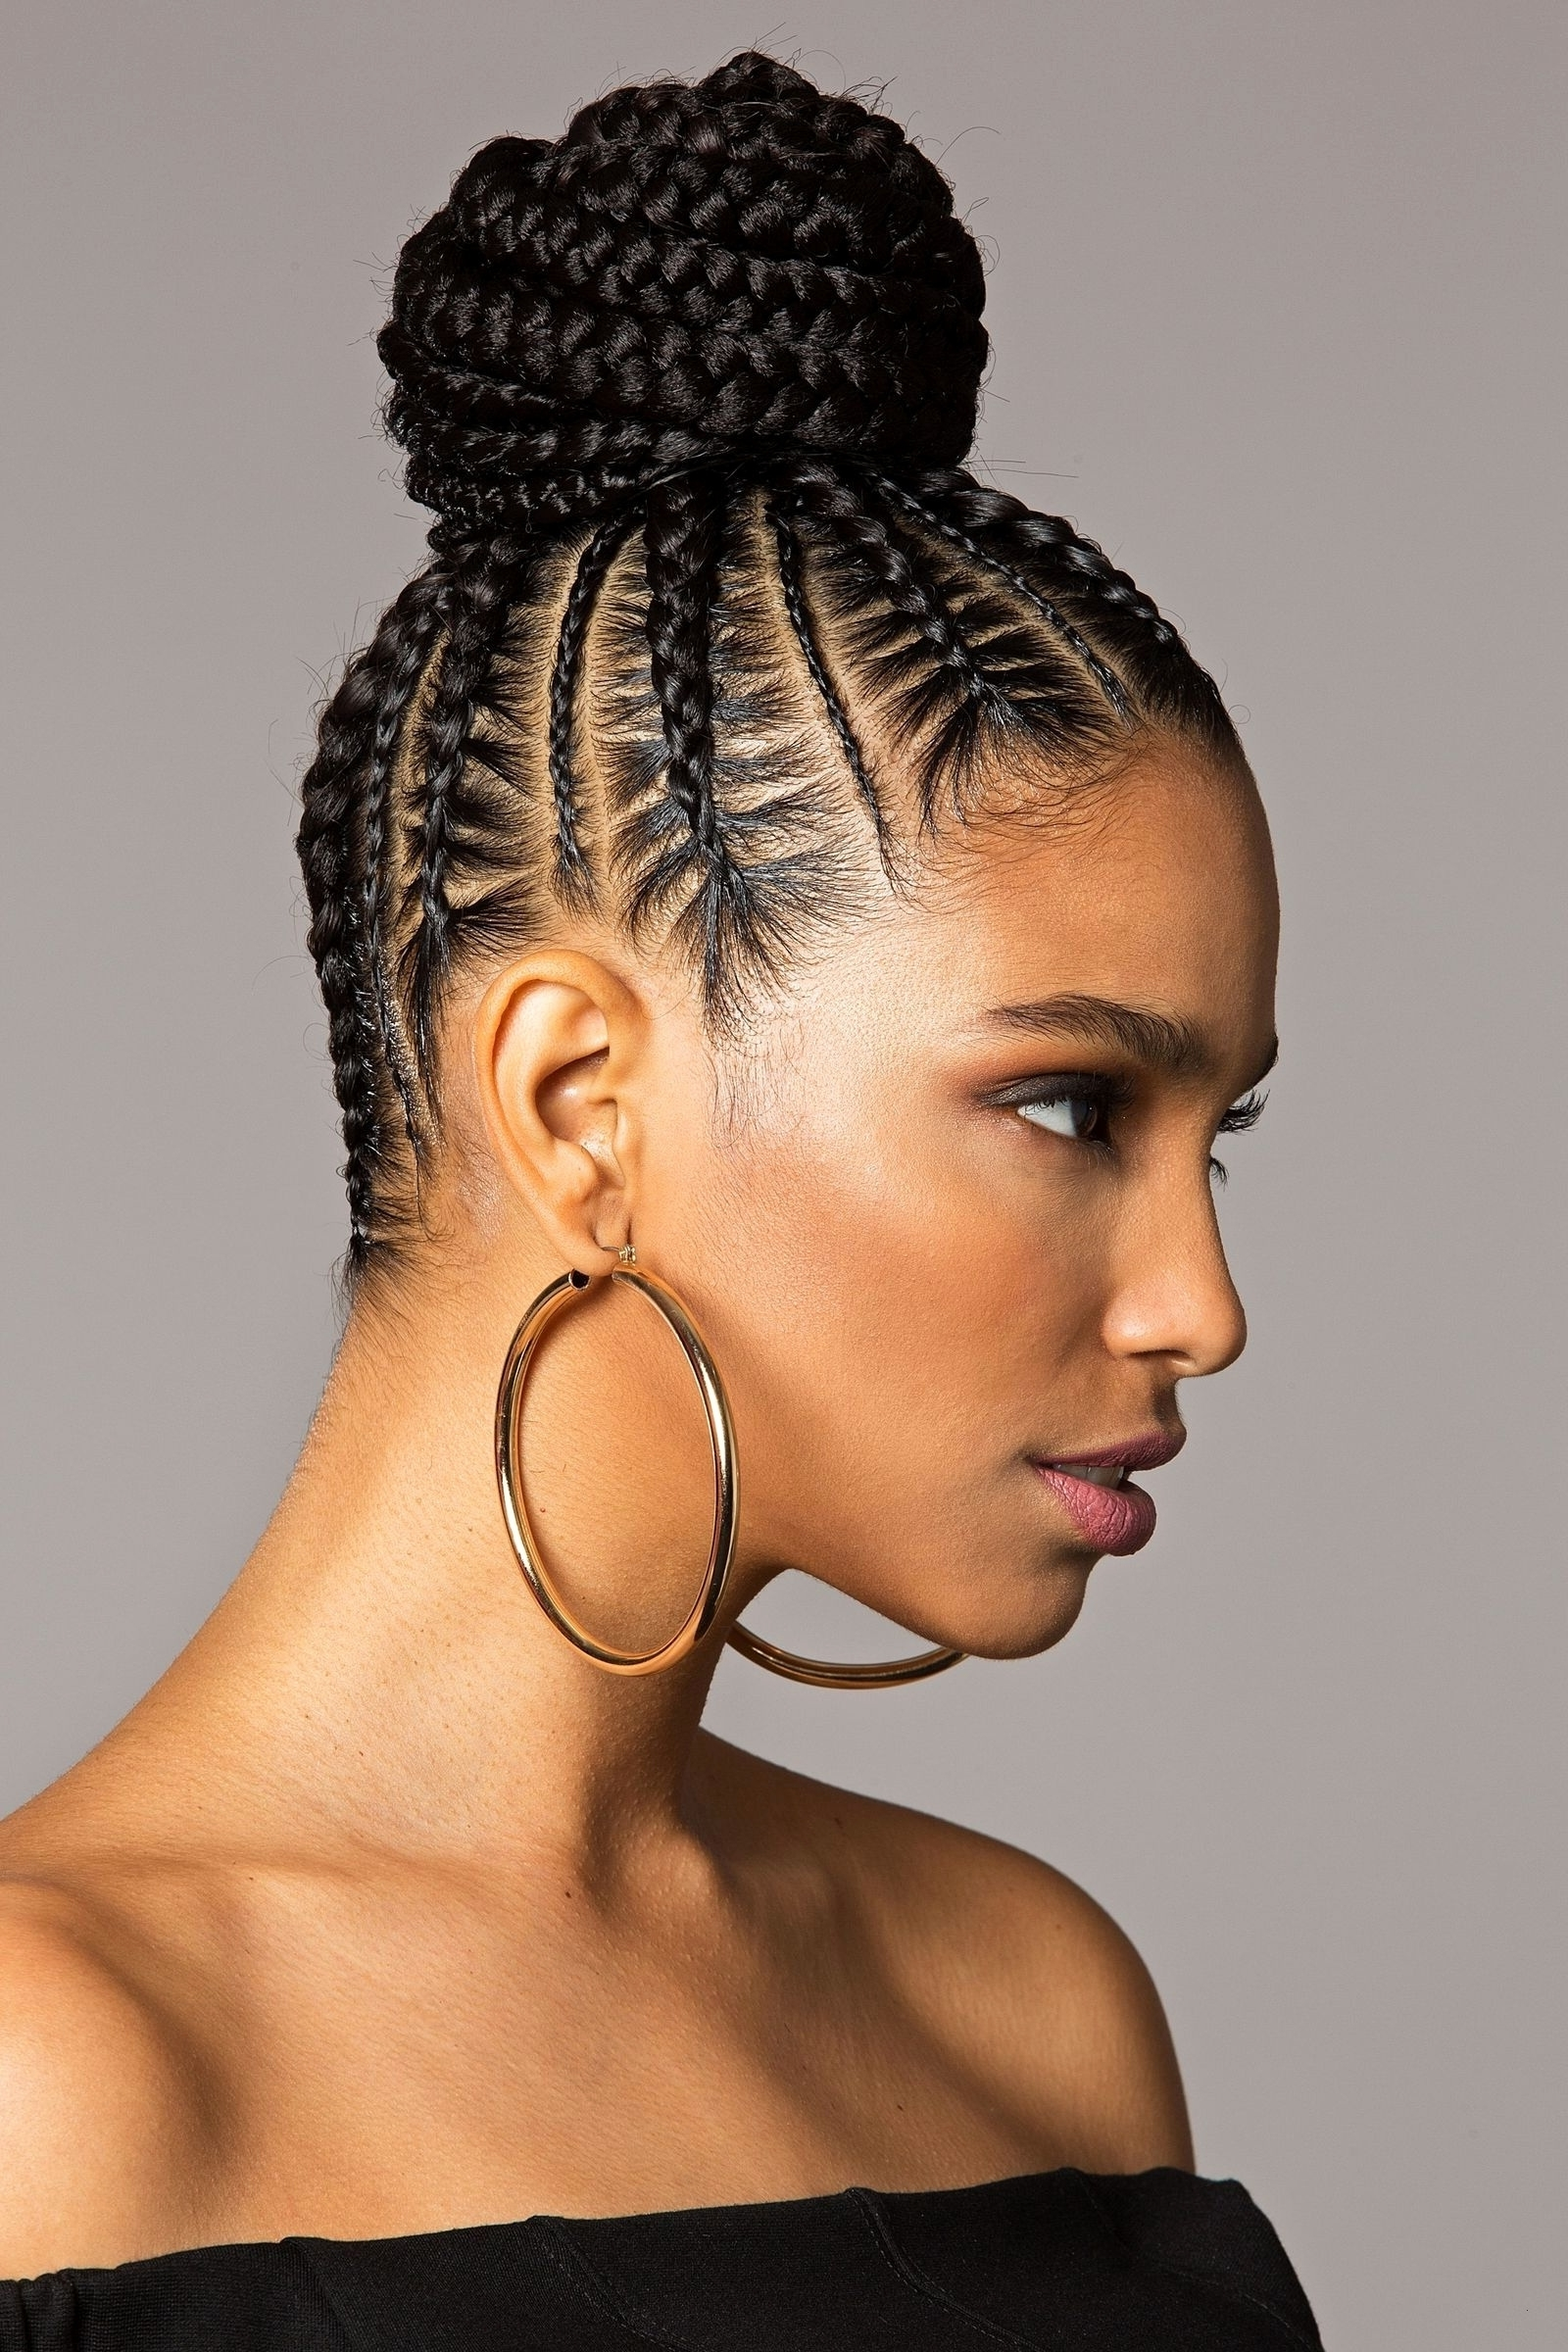 Newest Cornrow Updo Hairstyles With Weave With Regard To Braids Updo Hairstyles Fresh 28 Elegant Cornrow Updo Hairstyles (View 9 of 15)